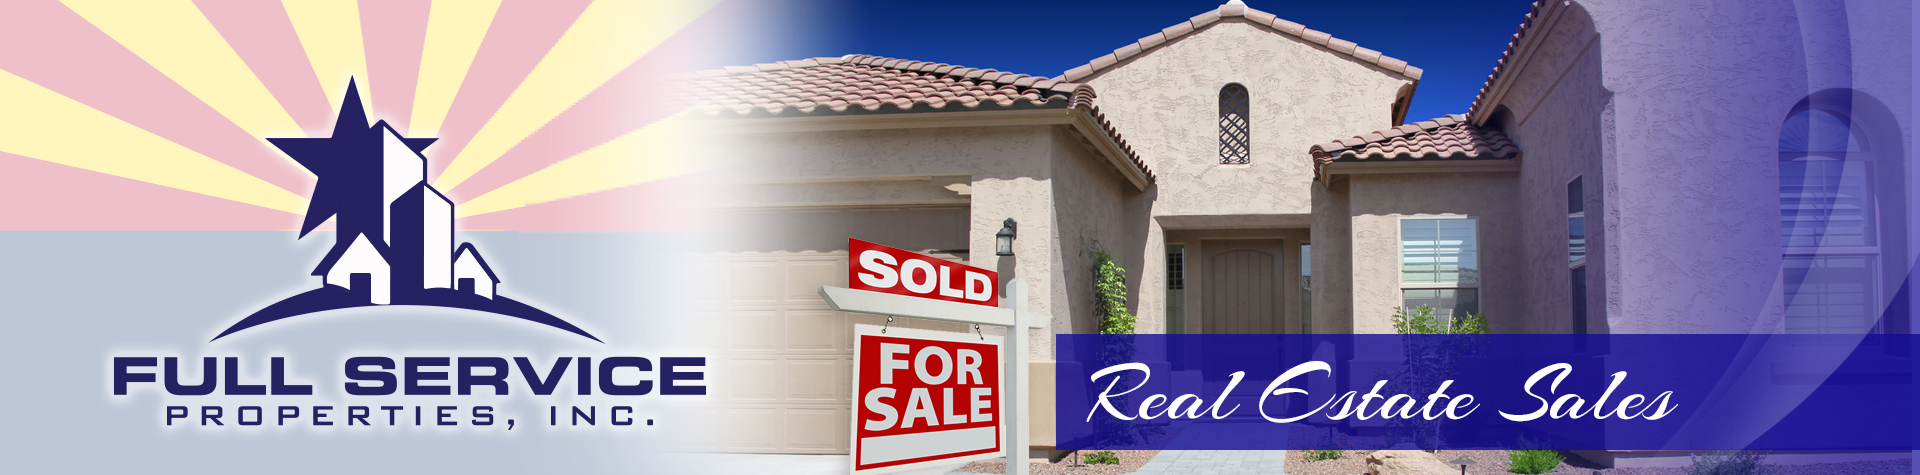 Full Service Properties Cave Creek AZ Real Estate